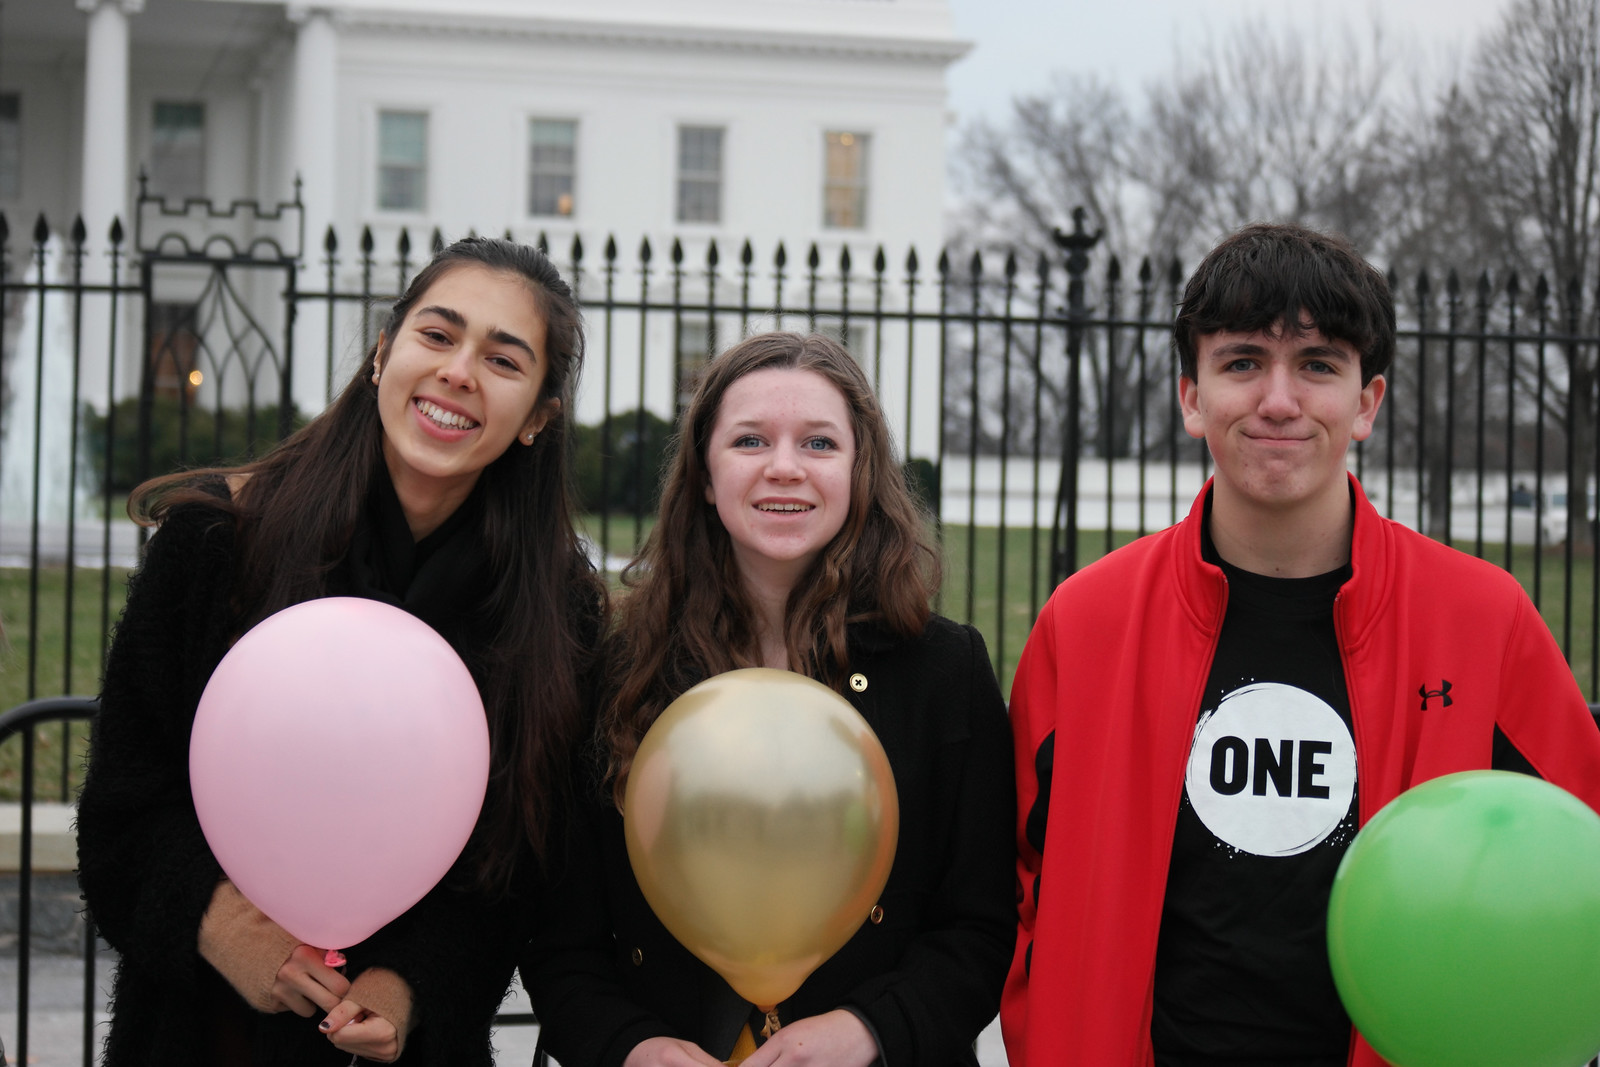 Action 2015 in Washington, DC